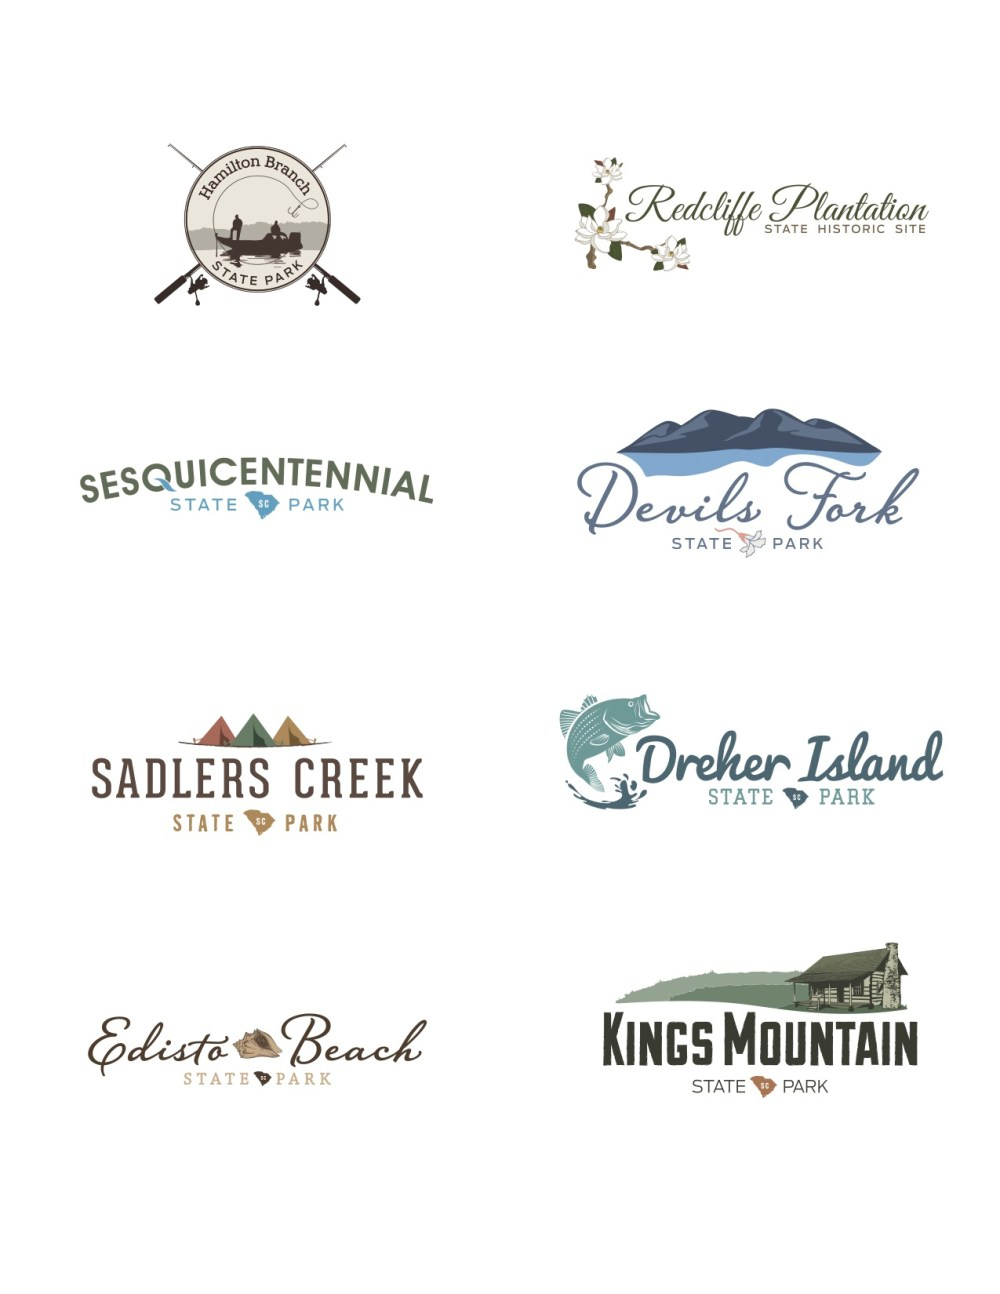 medium resolution of  some sort of imagery related to a magnolia tree famous in the region all of these logos are now the official identity of those specific state parks